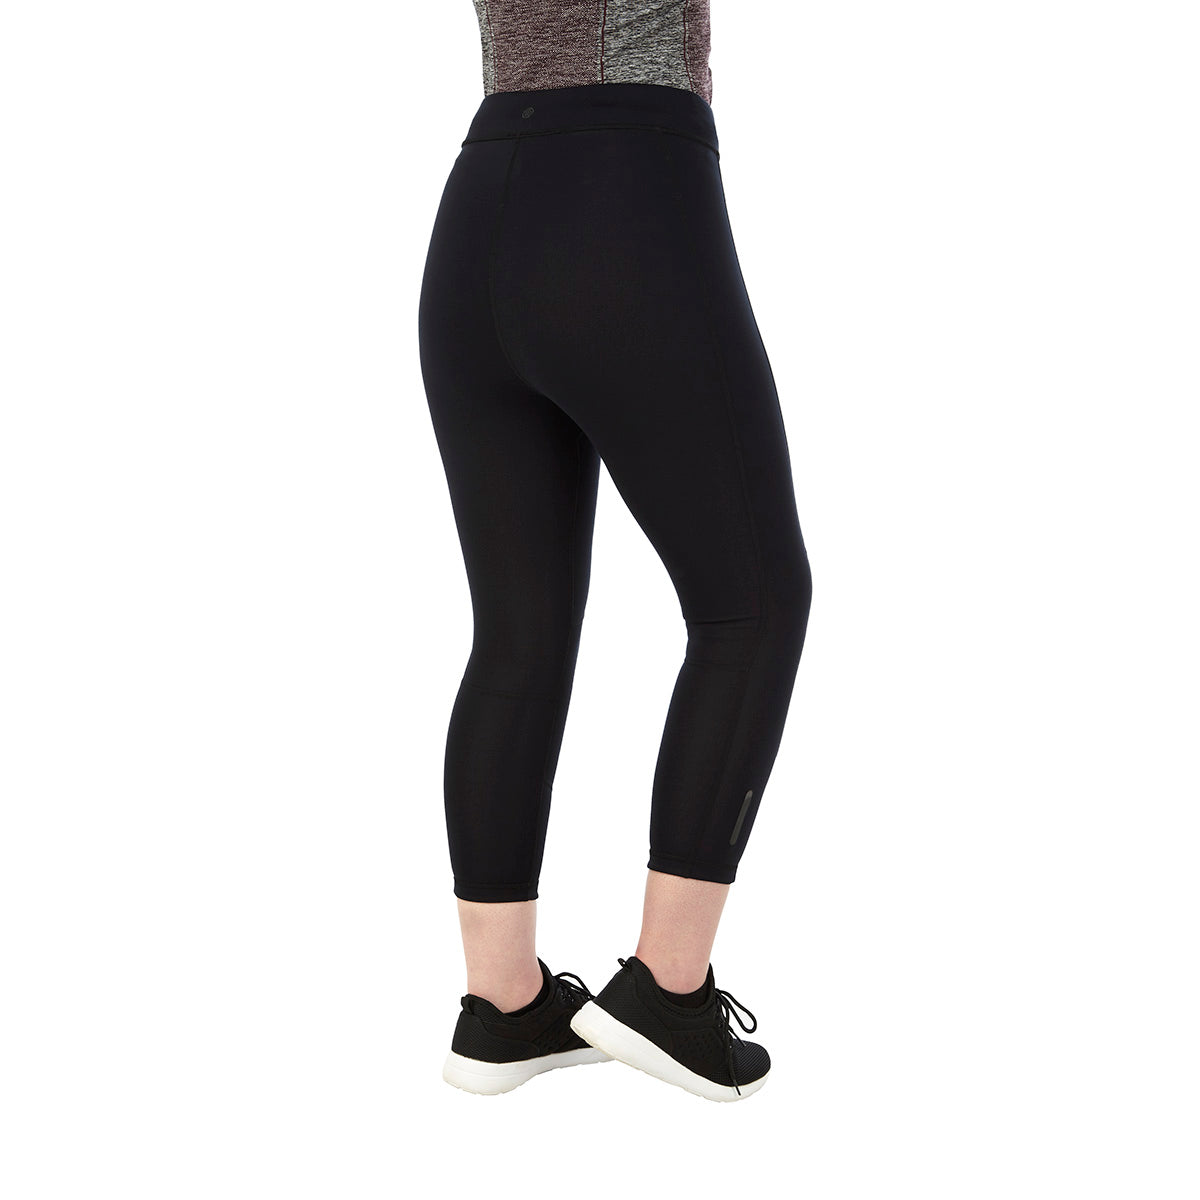 Raid Womens Reversible Performance Capris - Black/Grey Marl image 4